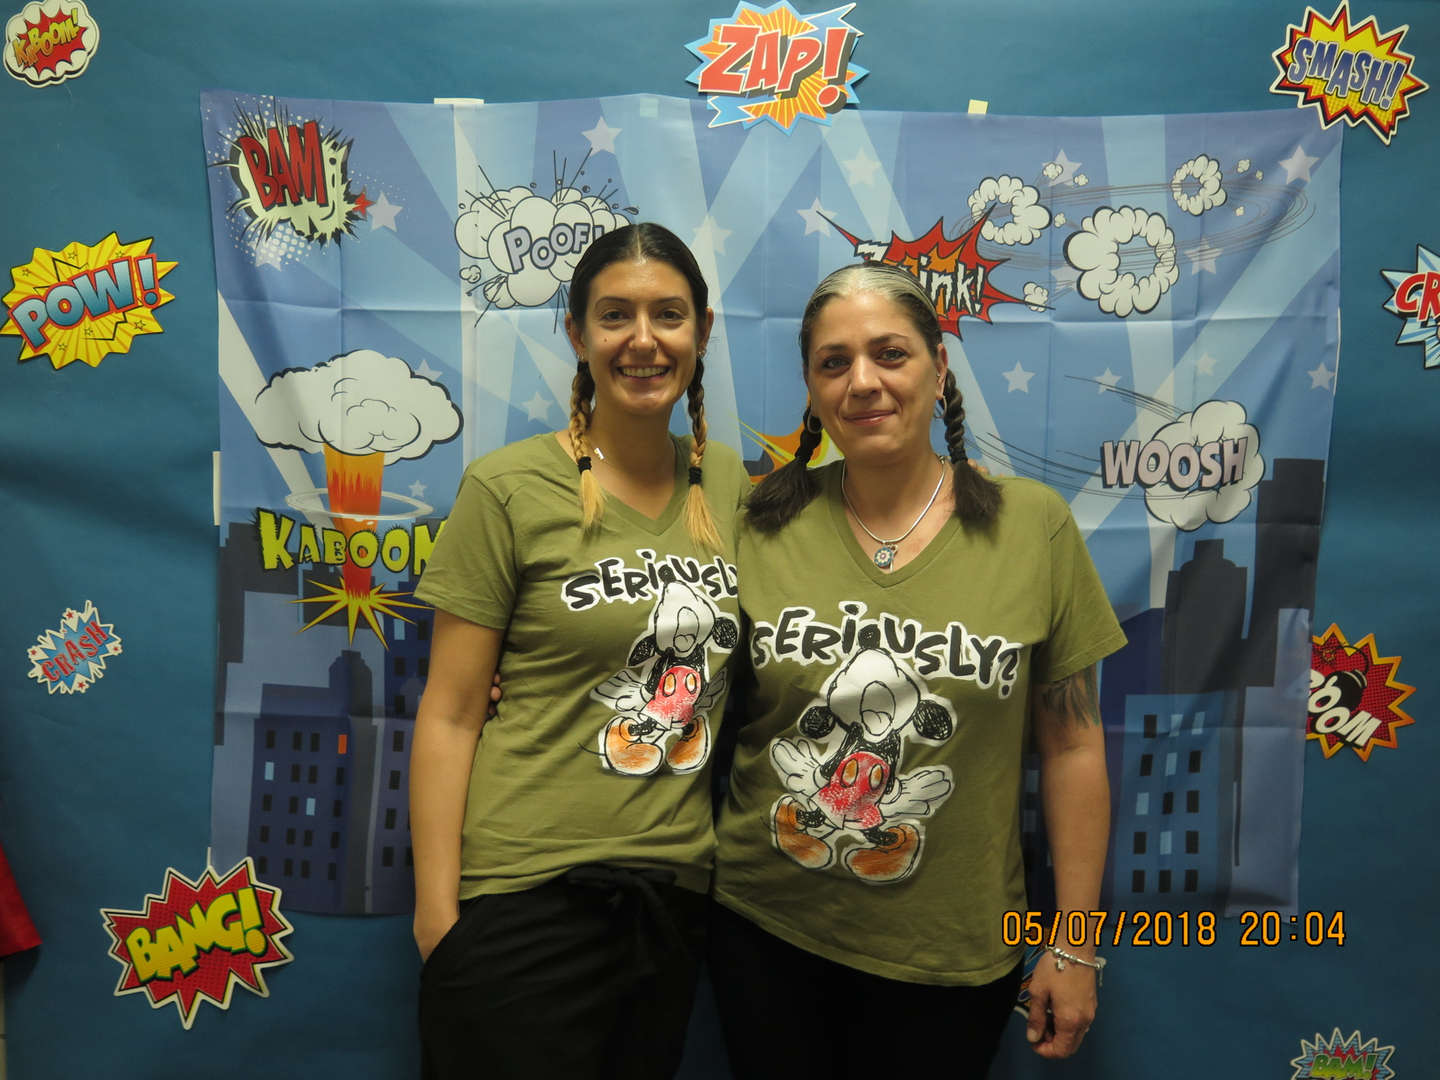 Teachers in Mickey Mouse shirts in front of a comic themed backdrop